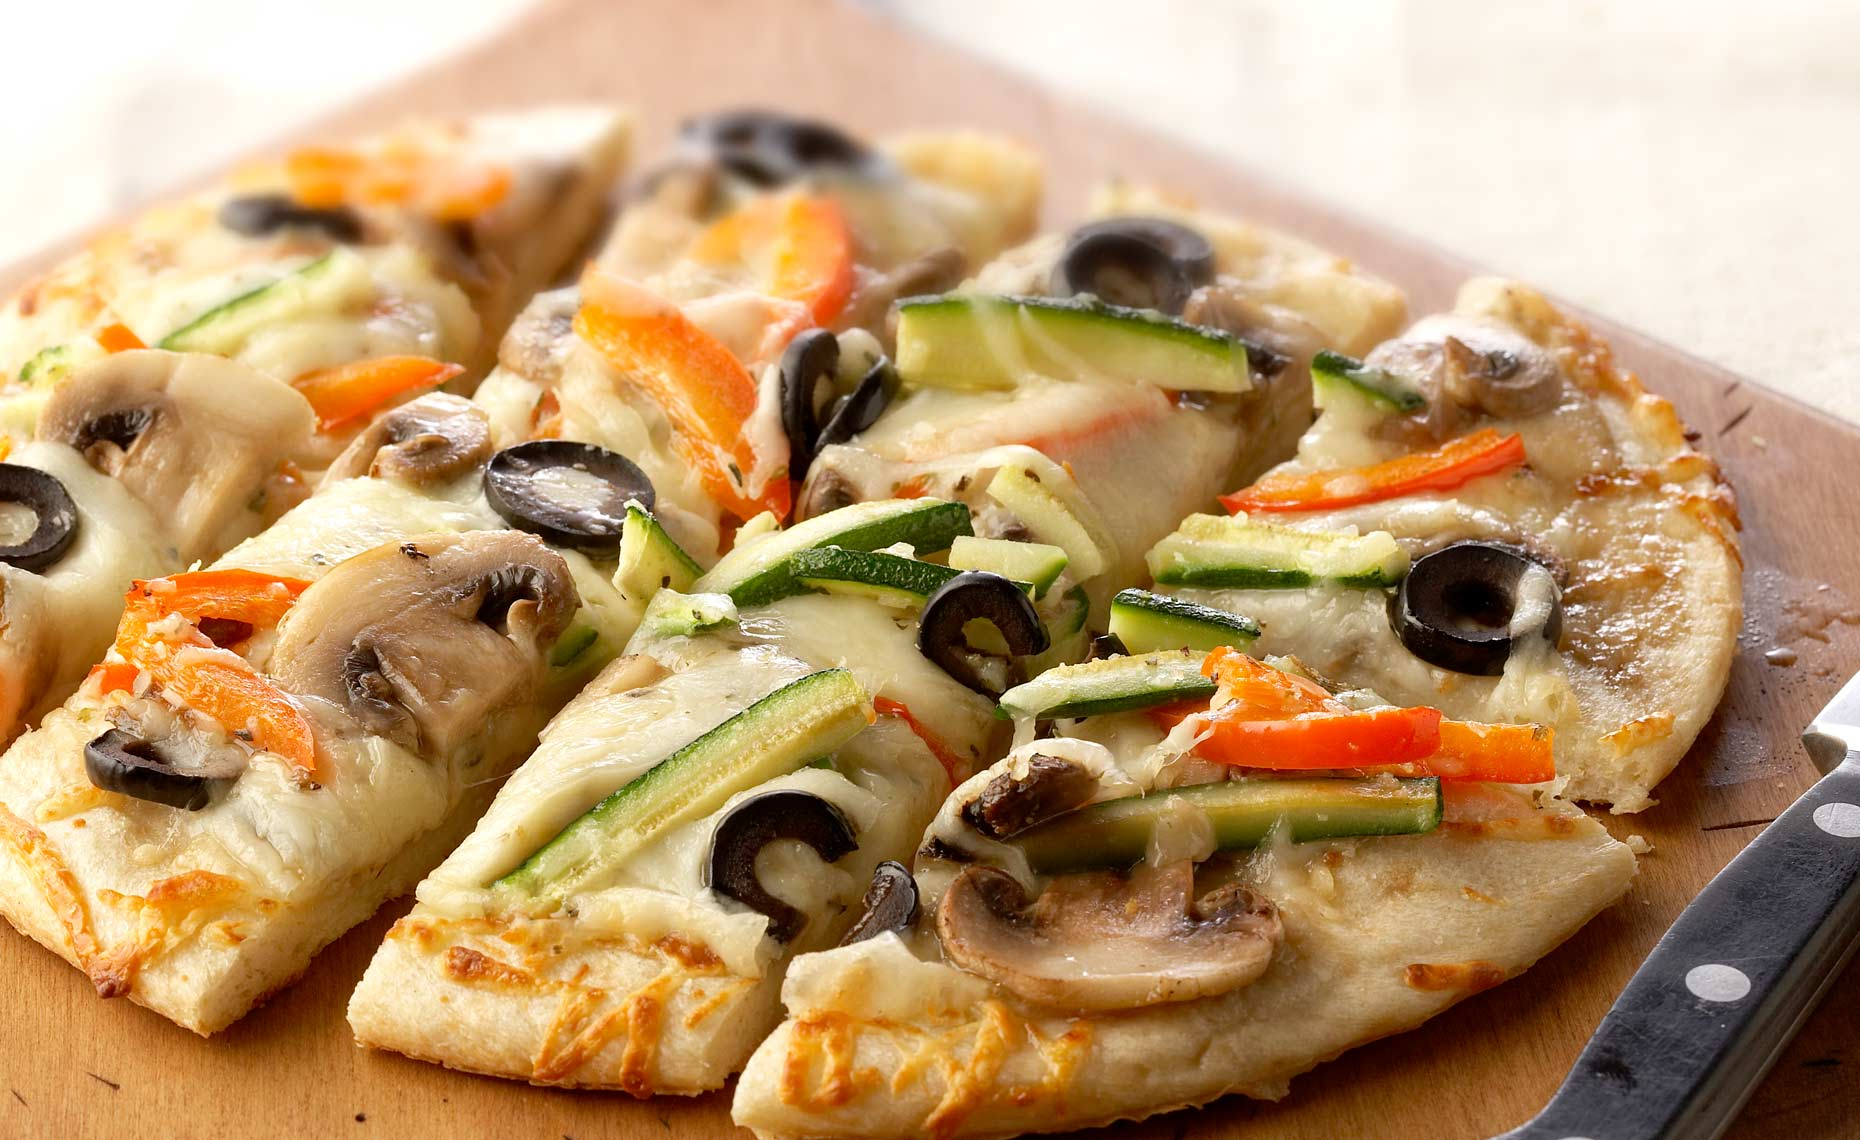 maryland-food-photographers-pizza-flatbread-vegetable-08